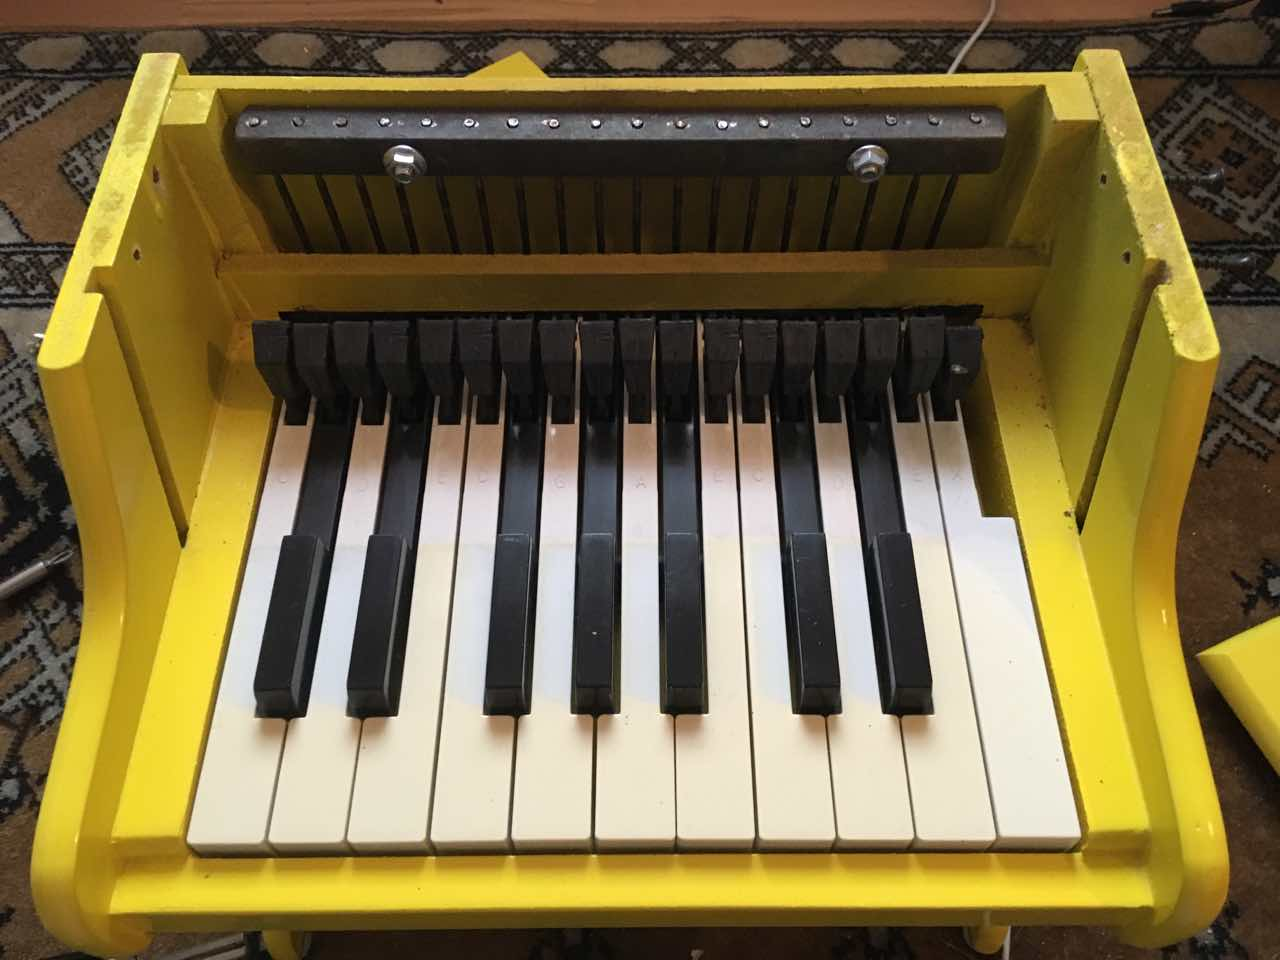 a-toy-piano